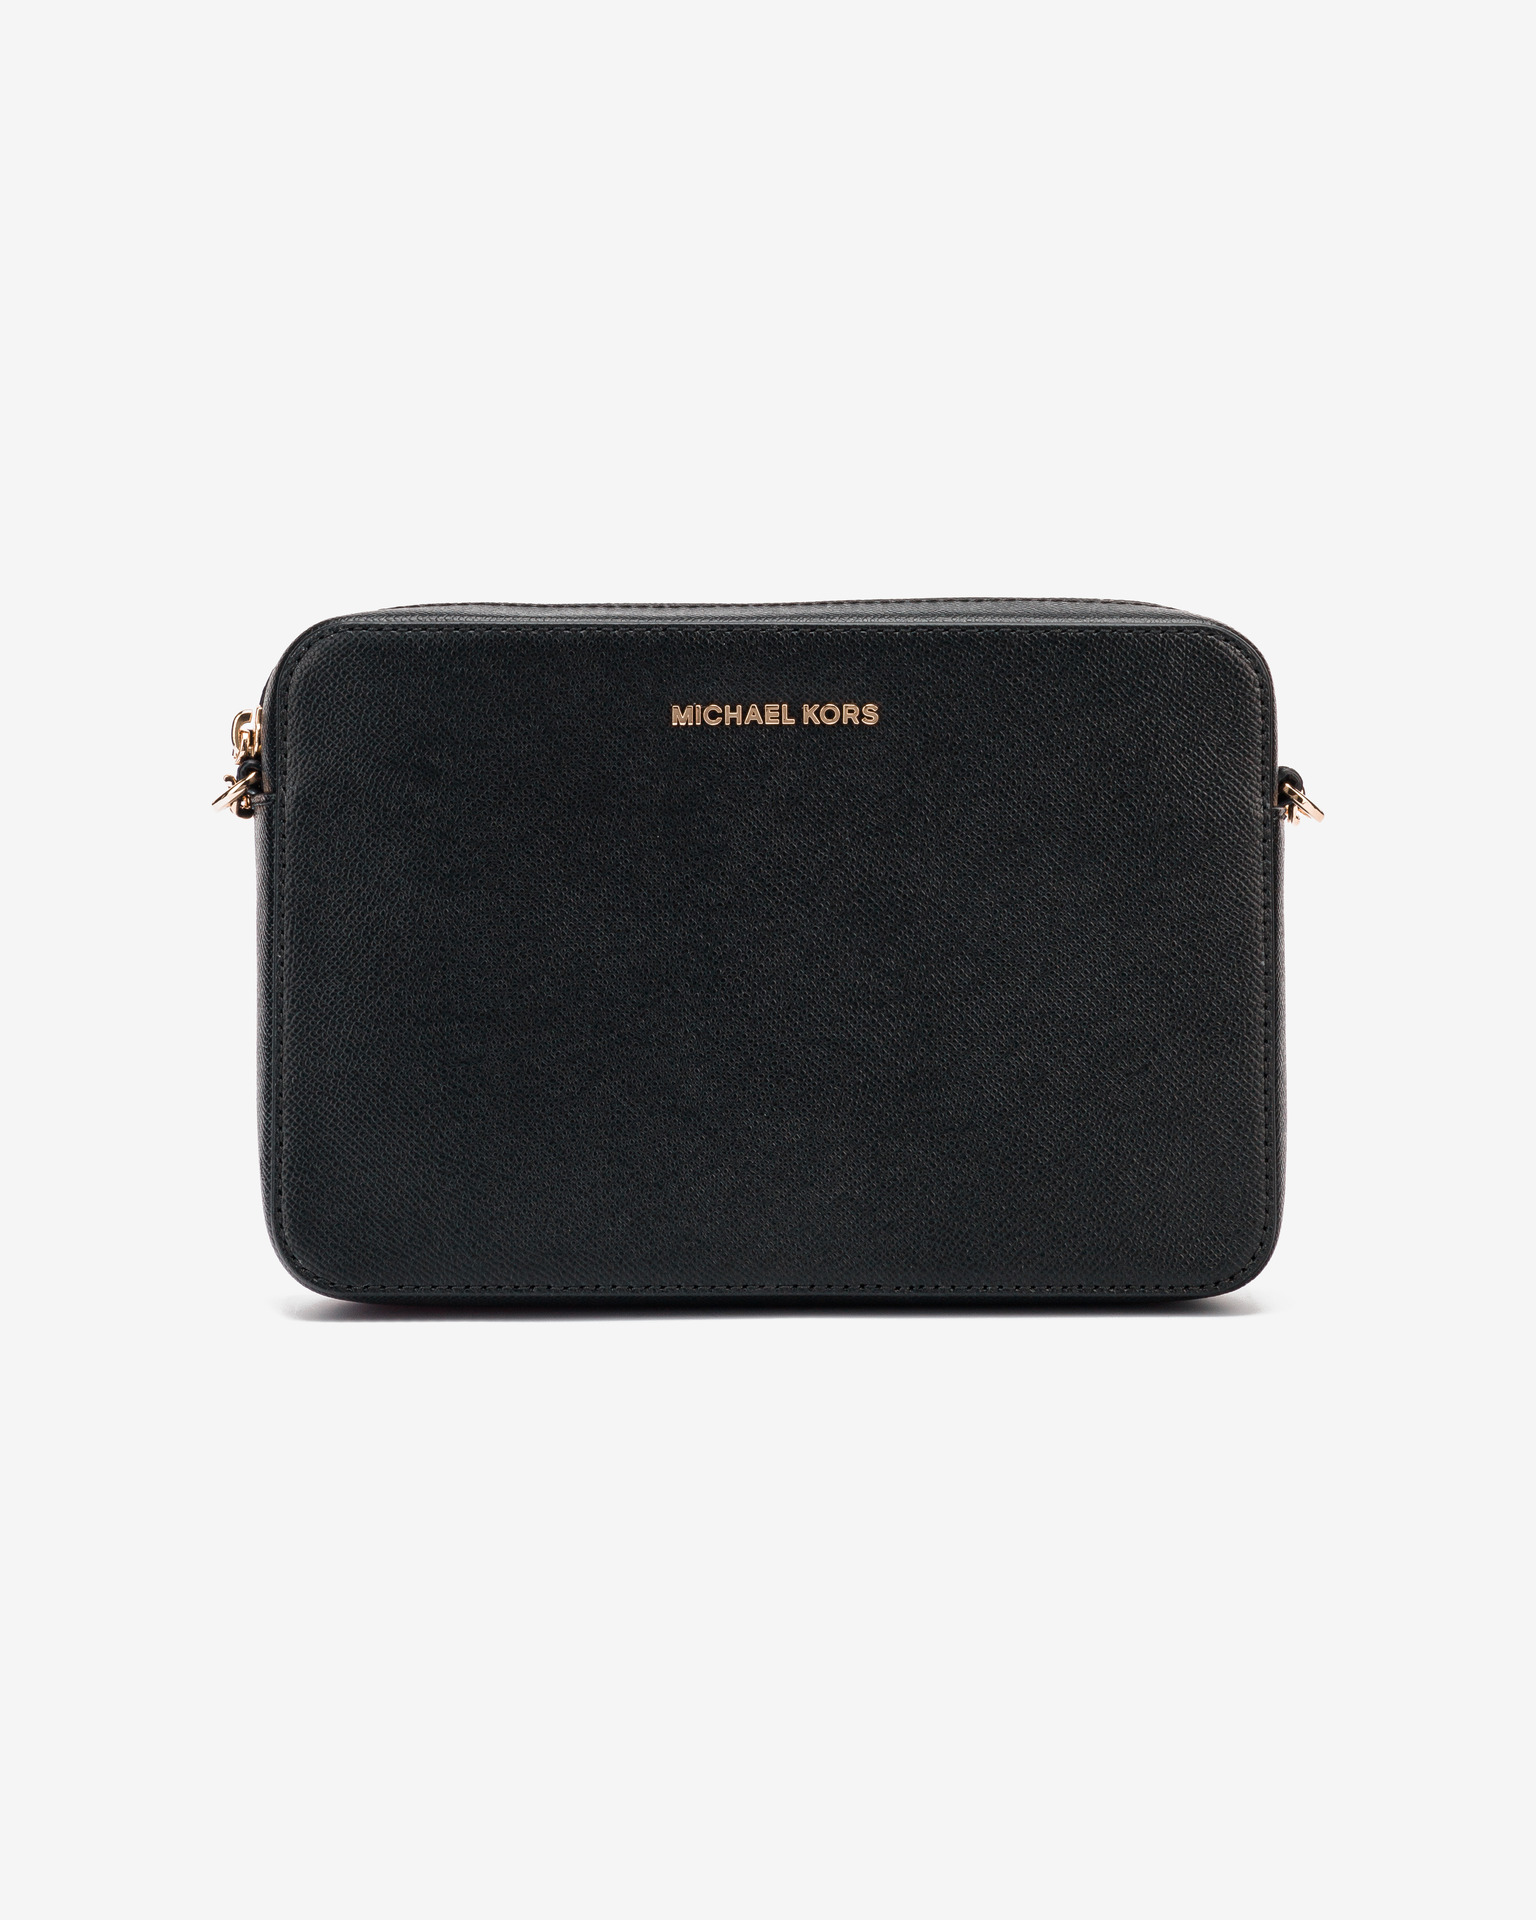 Jet Set Travel Cross body bag Michael Kors